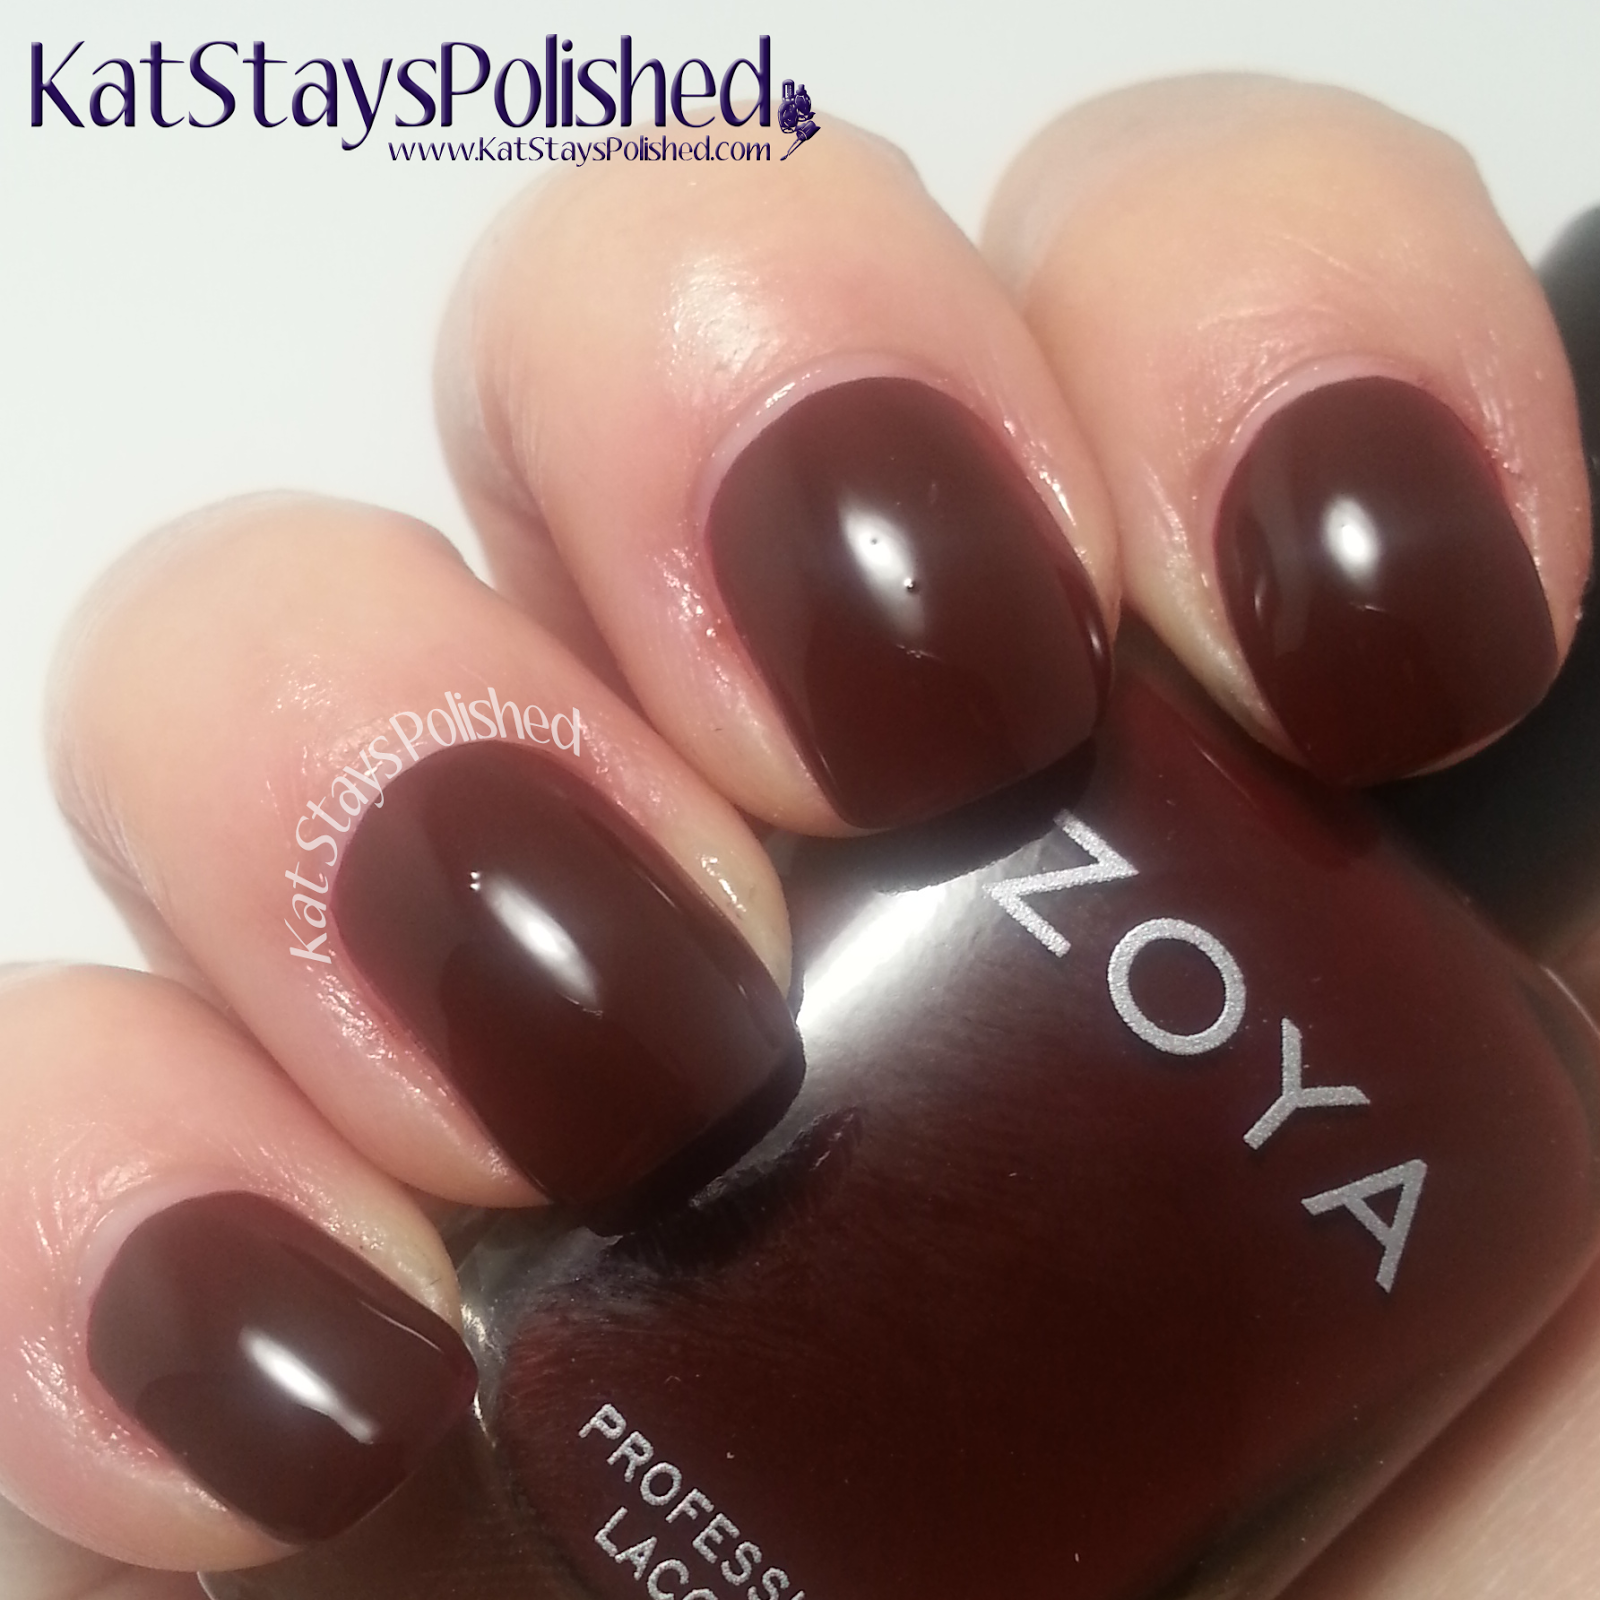 Zoya Entice 2014 - Claire | Kat Stays Polished